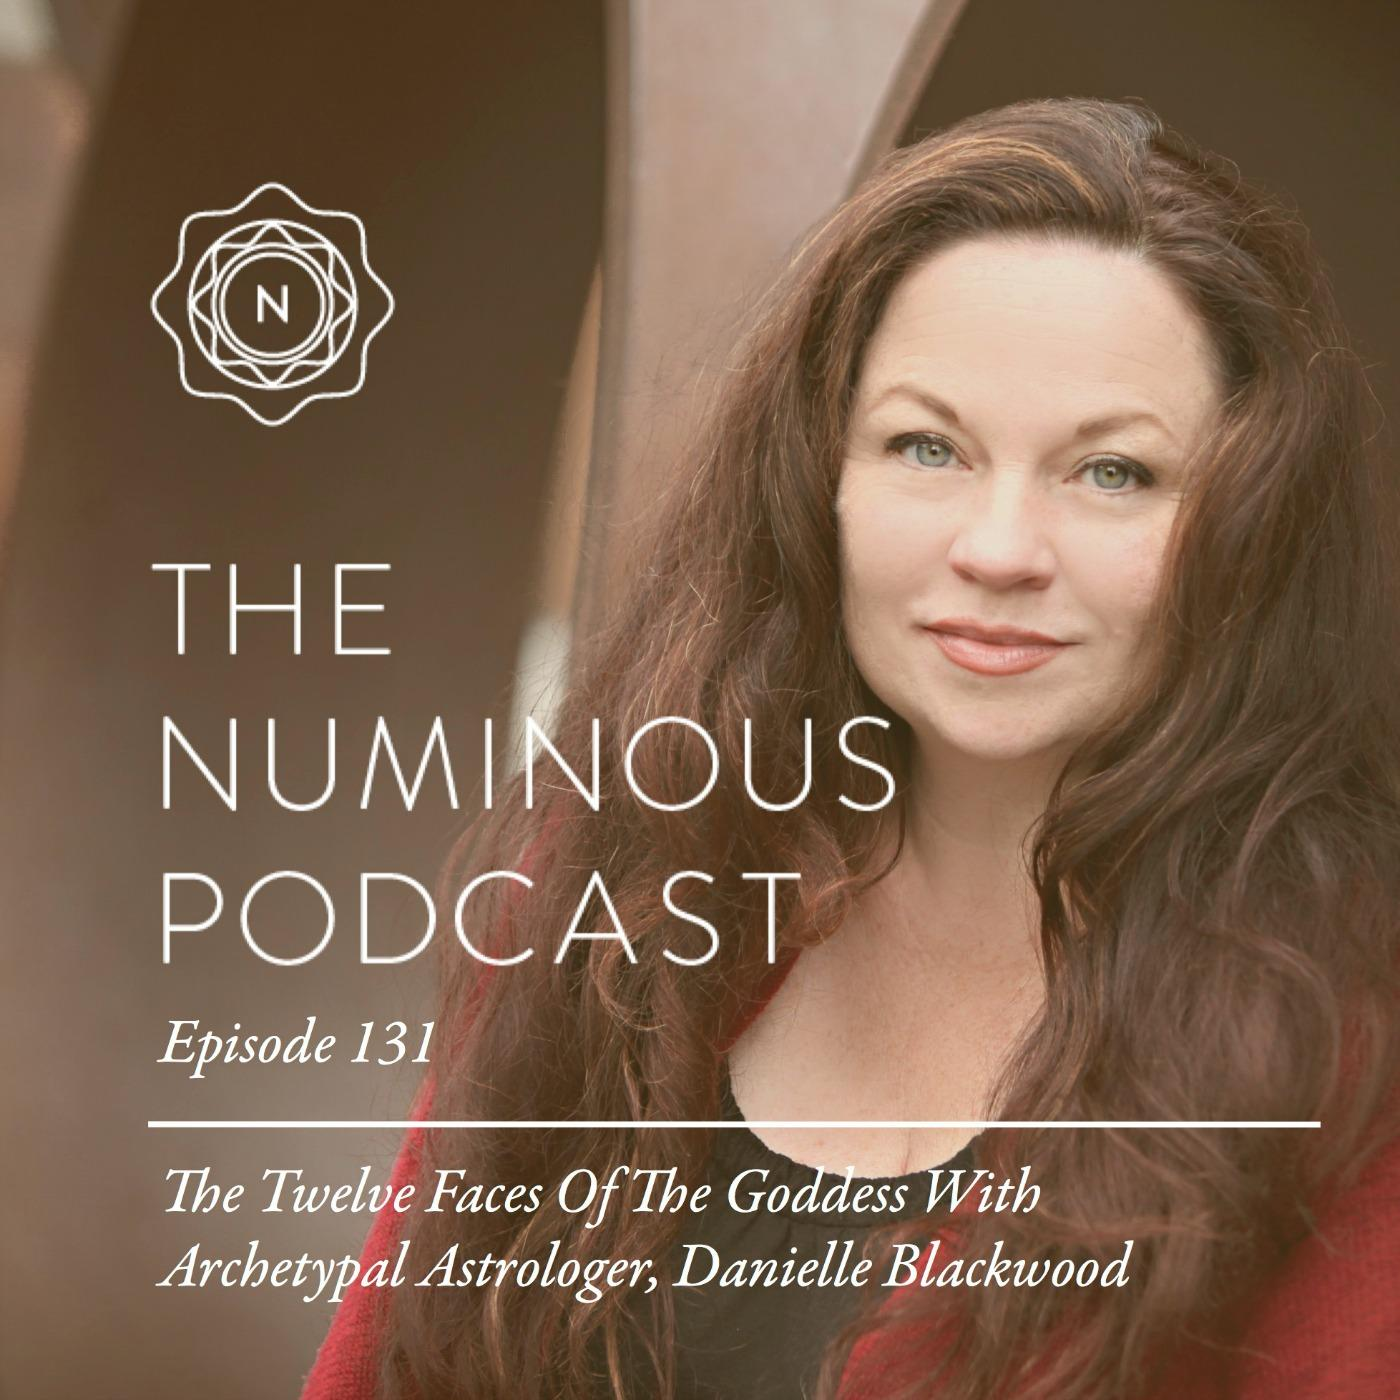 TNP131 The Twelve Faces Of The Goddess with Archetypal Astrologer Danielle Blackwood